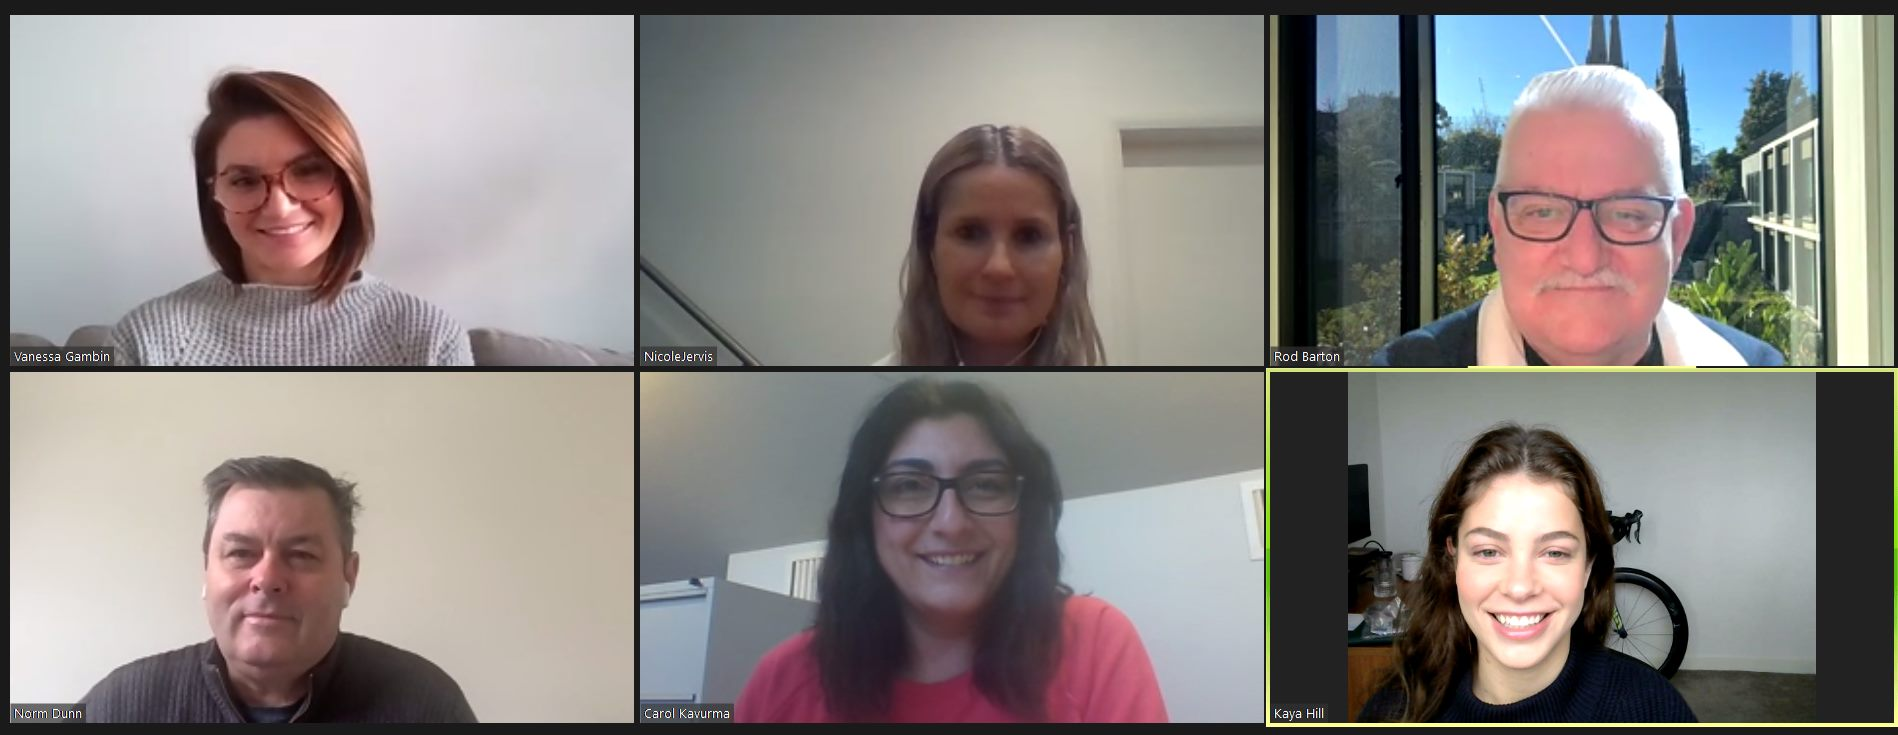 Zoom meeting with Look Good Feel Better Team